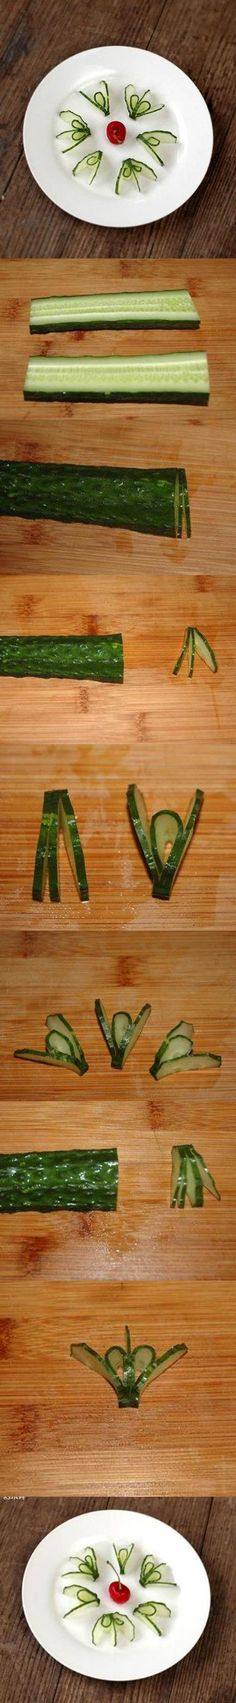 Food Art DIY - Cucumber Flower | iCreativeIdeas.com Like Us on Facebook == https://www.facebook.com/icreativeideas